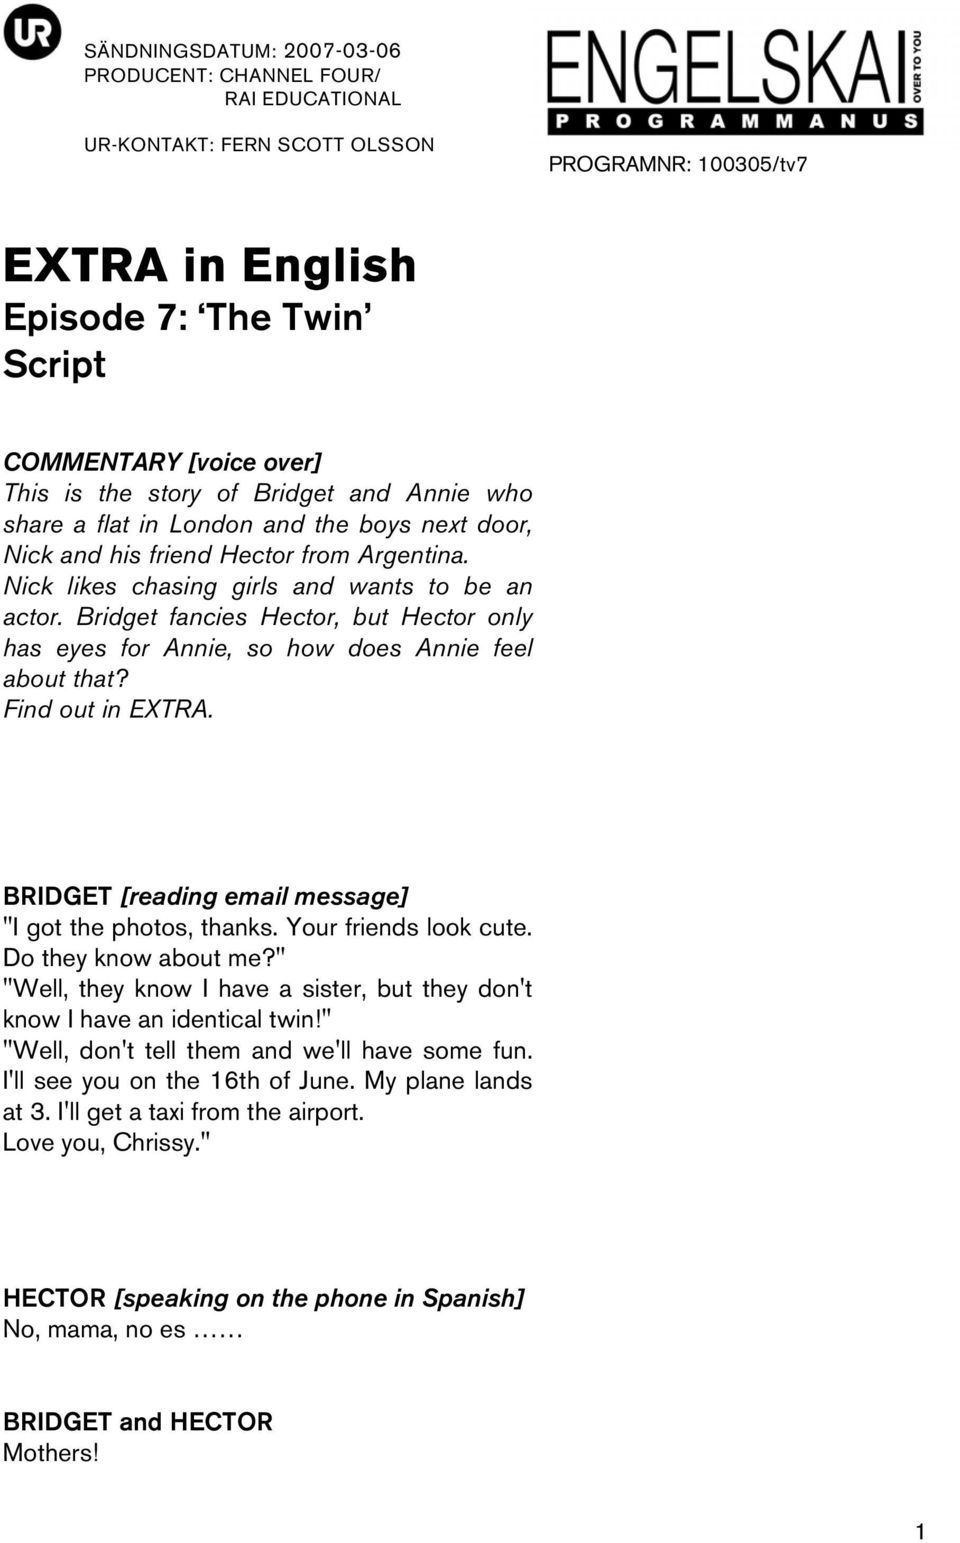 EXTRA in English Episode 7: The Twin Script - PDF